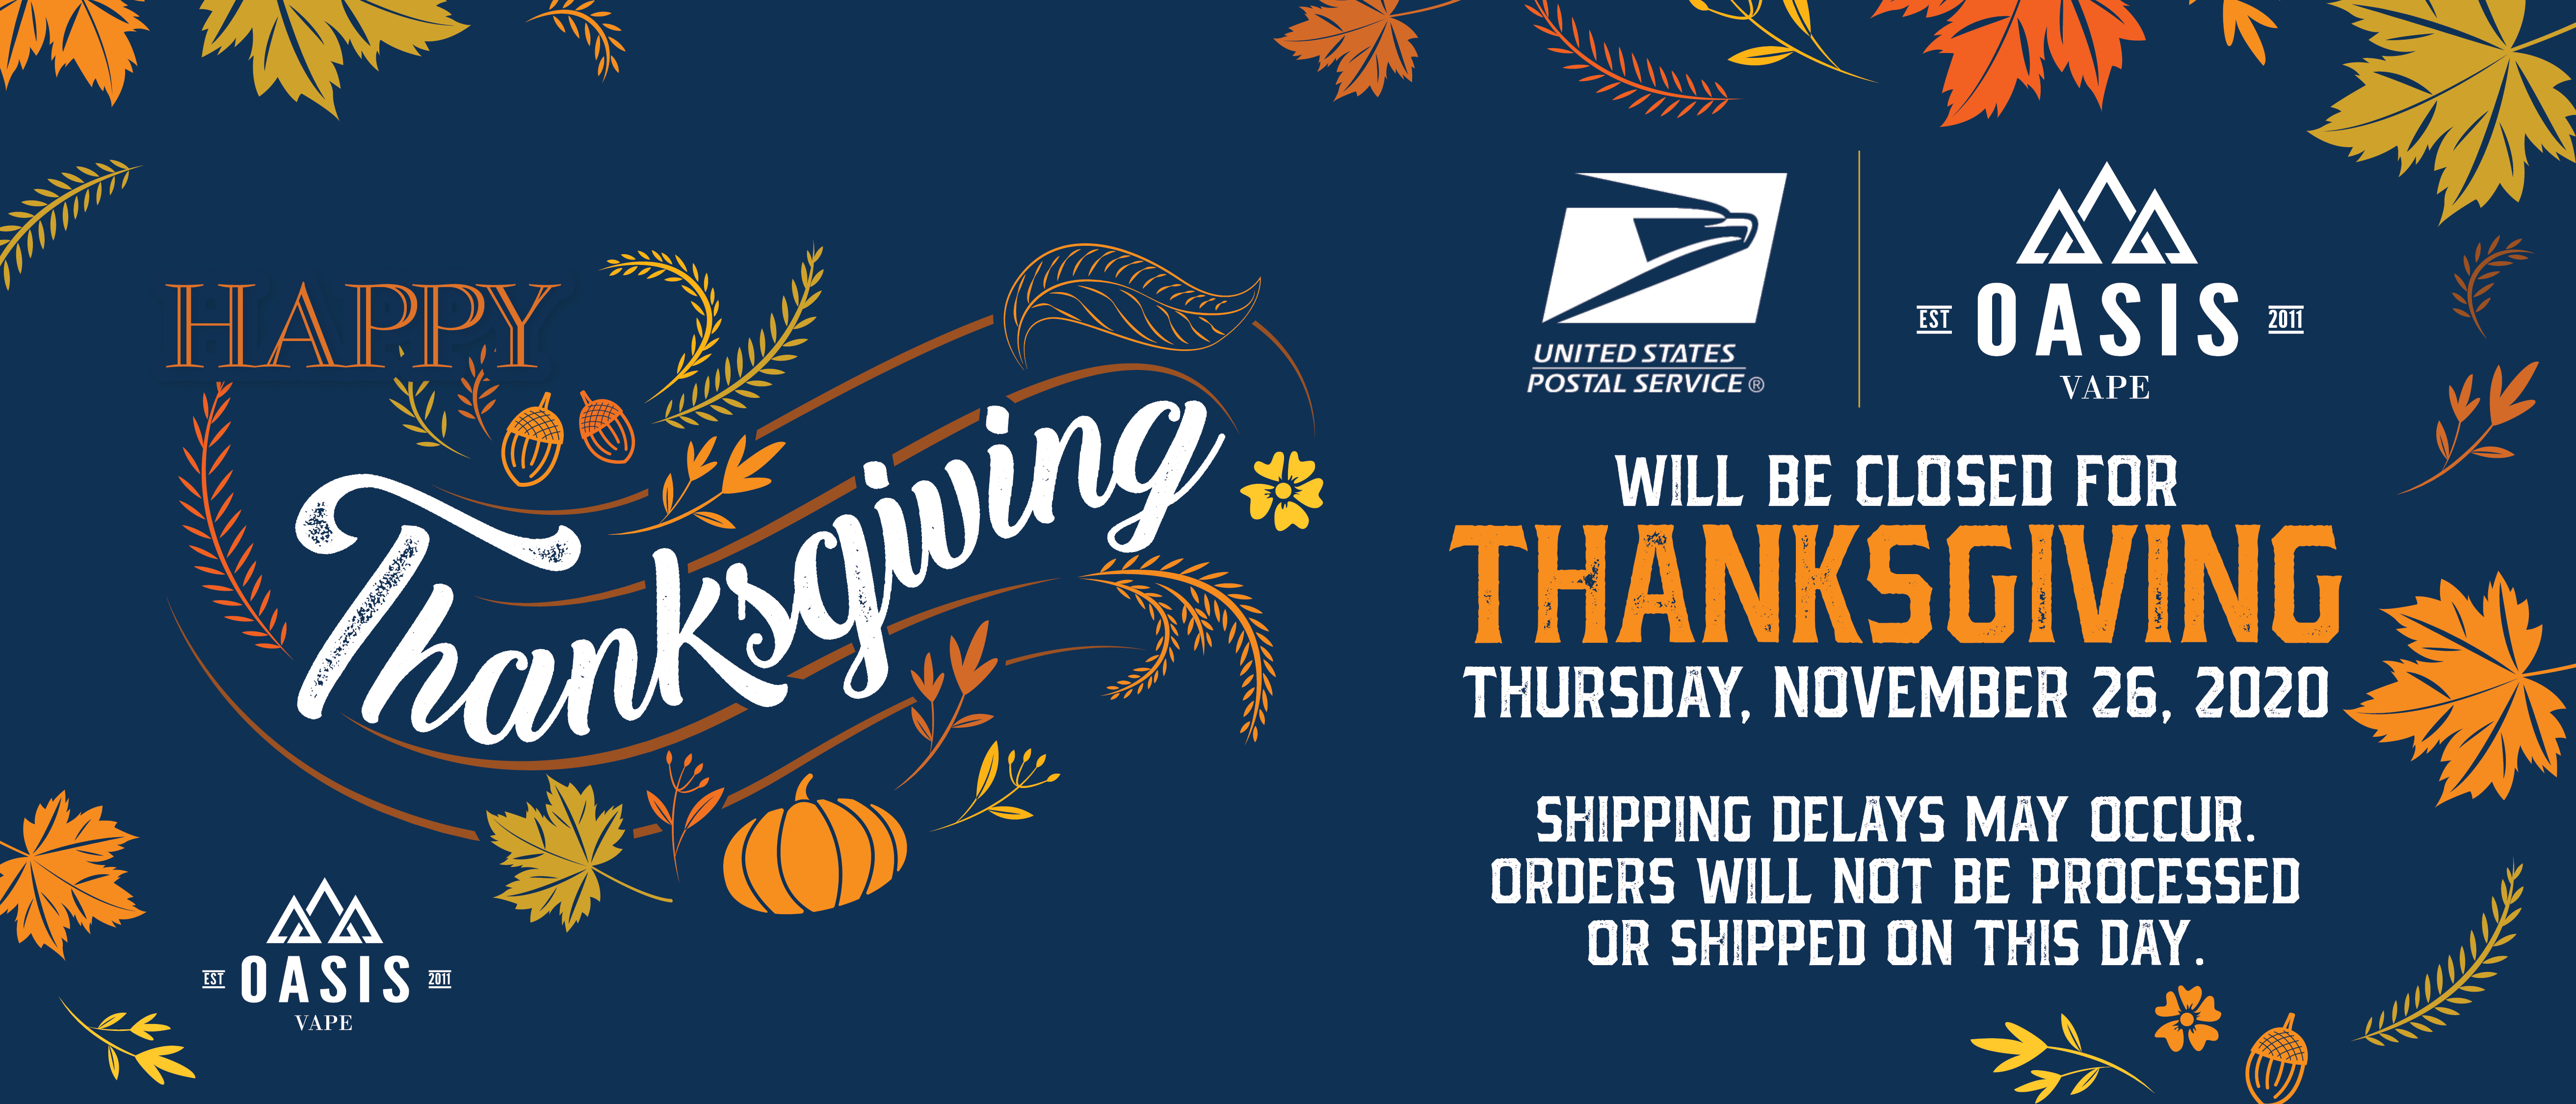 USPS and Oasis Vape will be closed for Thanksgiving. Orders will not be processed or shipped on this day. November 26, 2020.